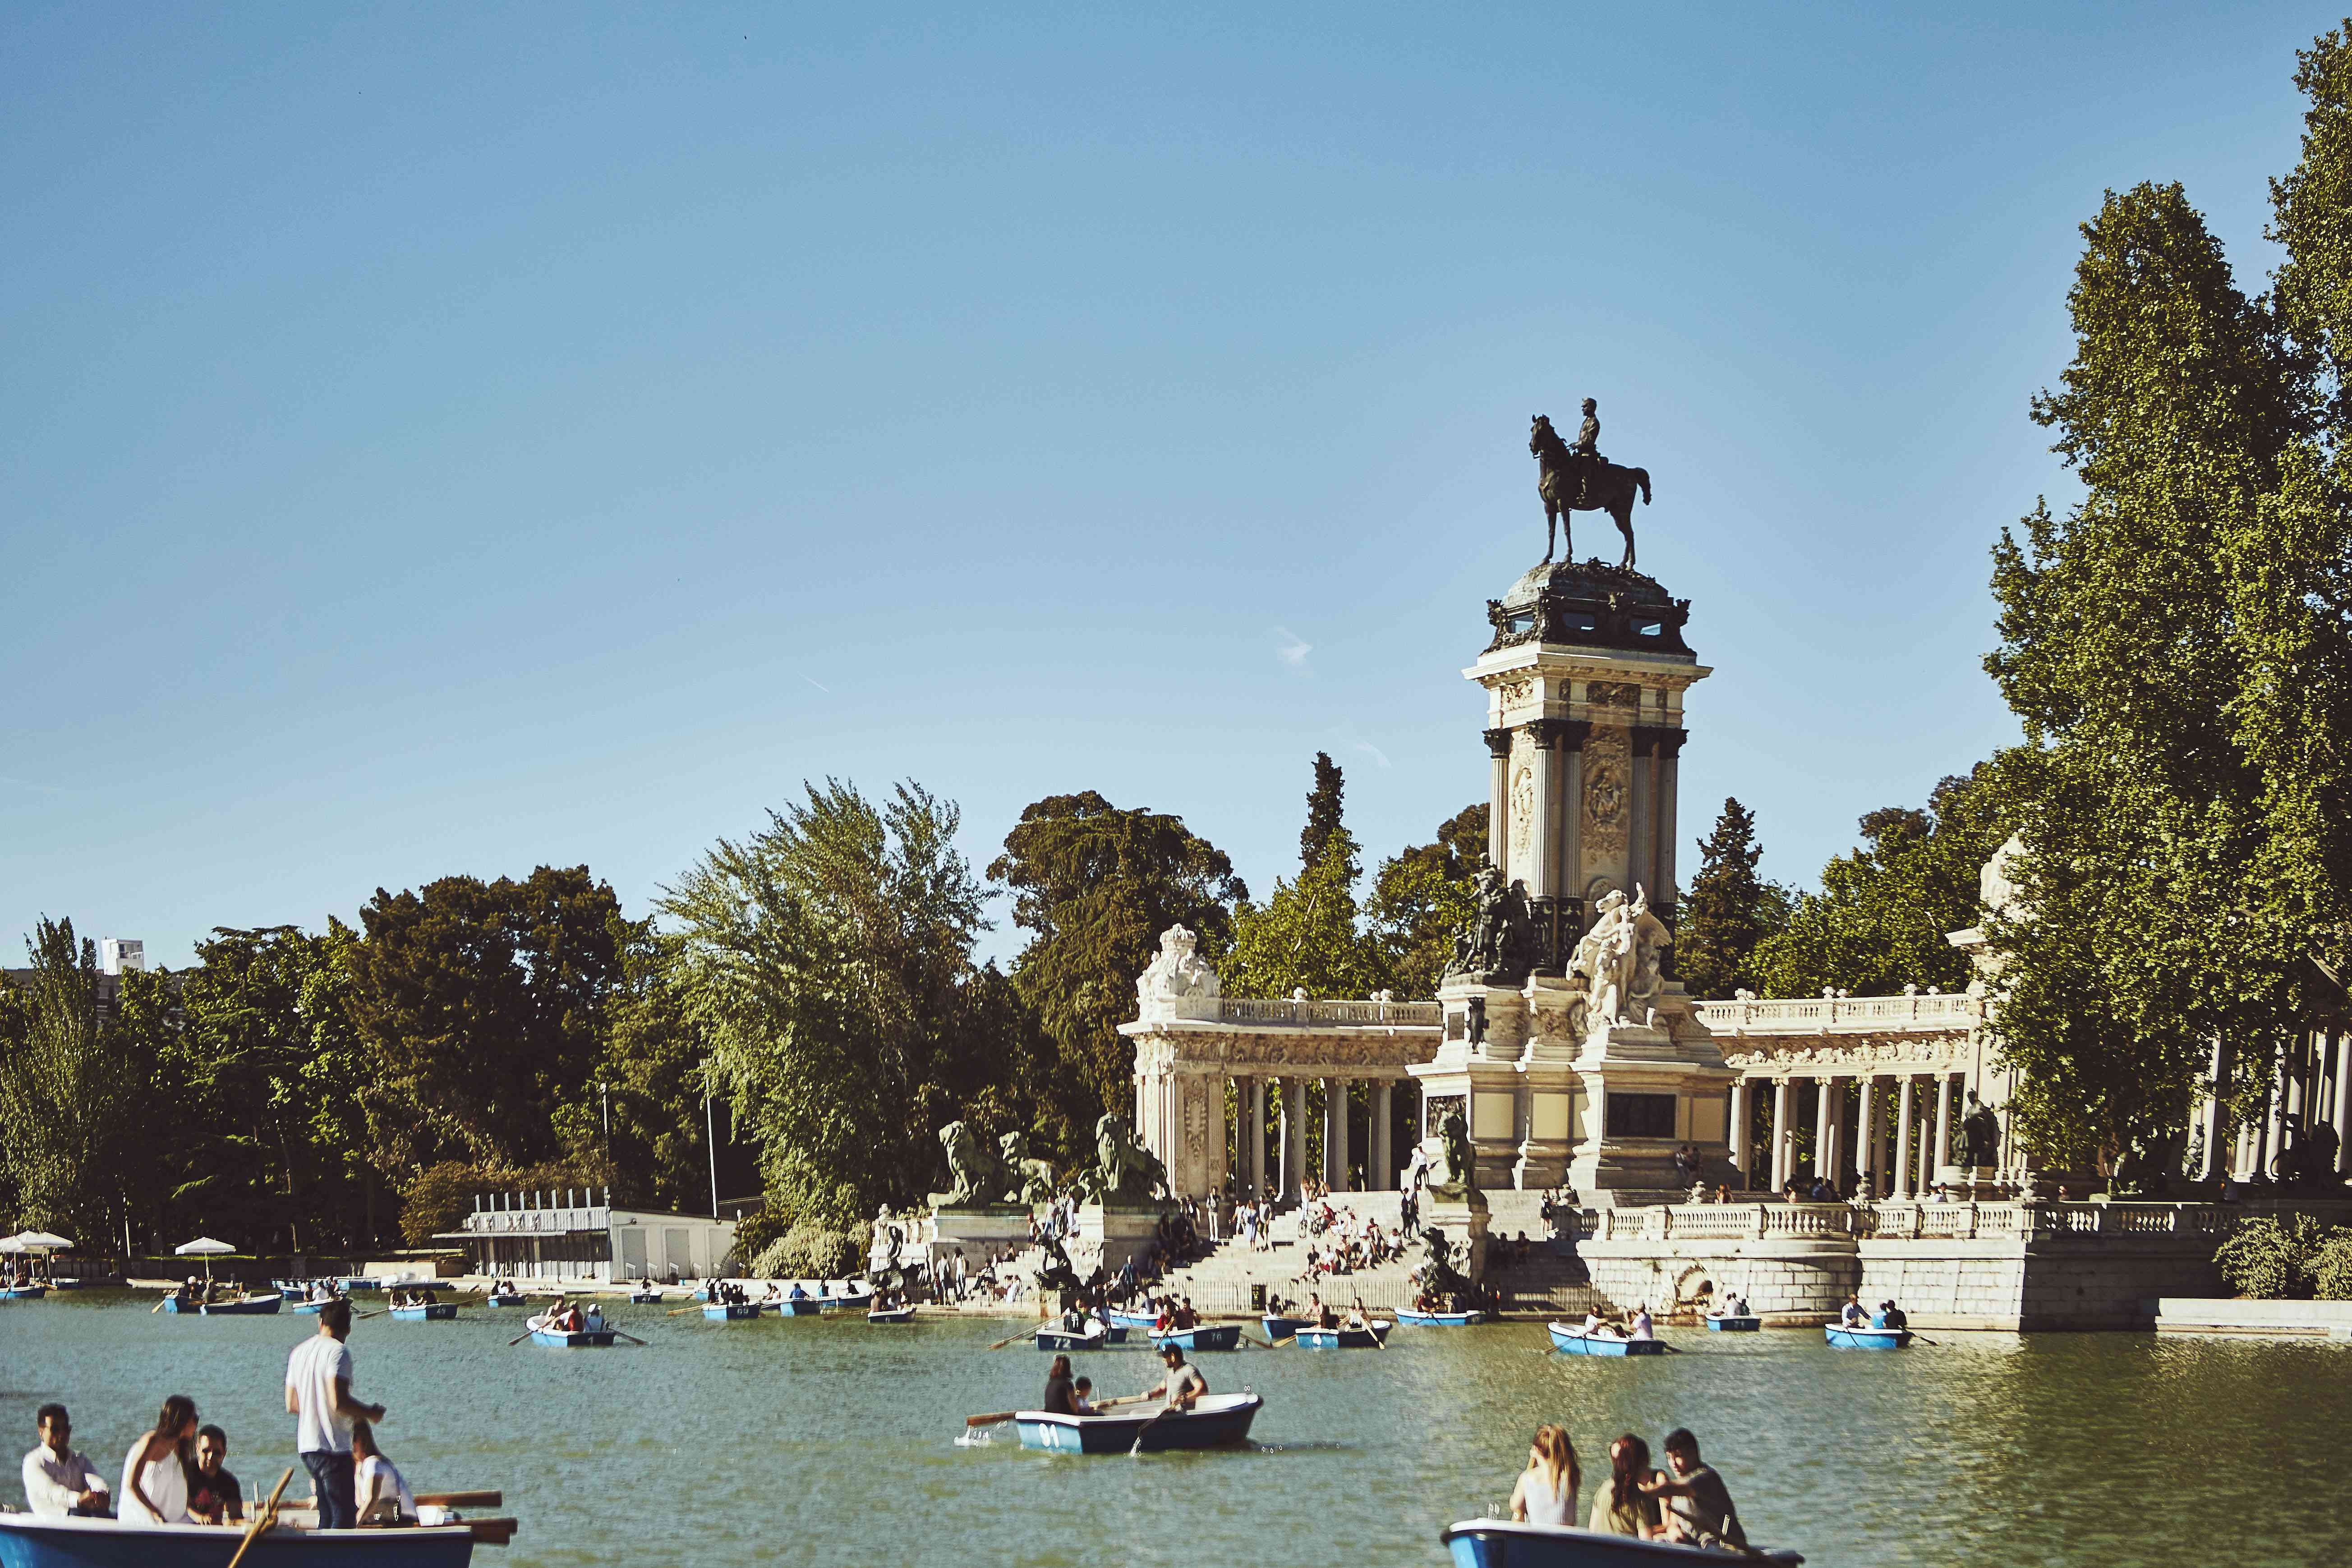 People rowing small boats around the lake in Buen Retiro Park